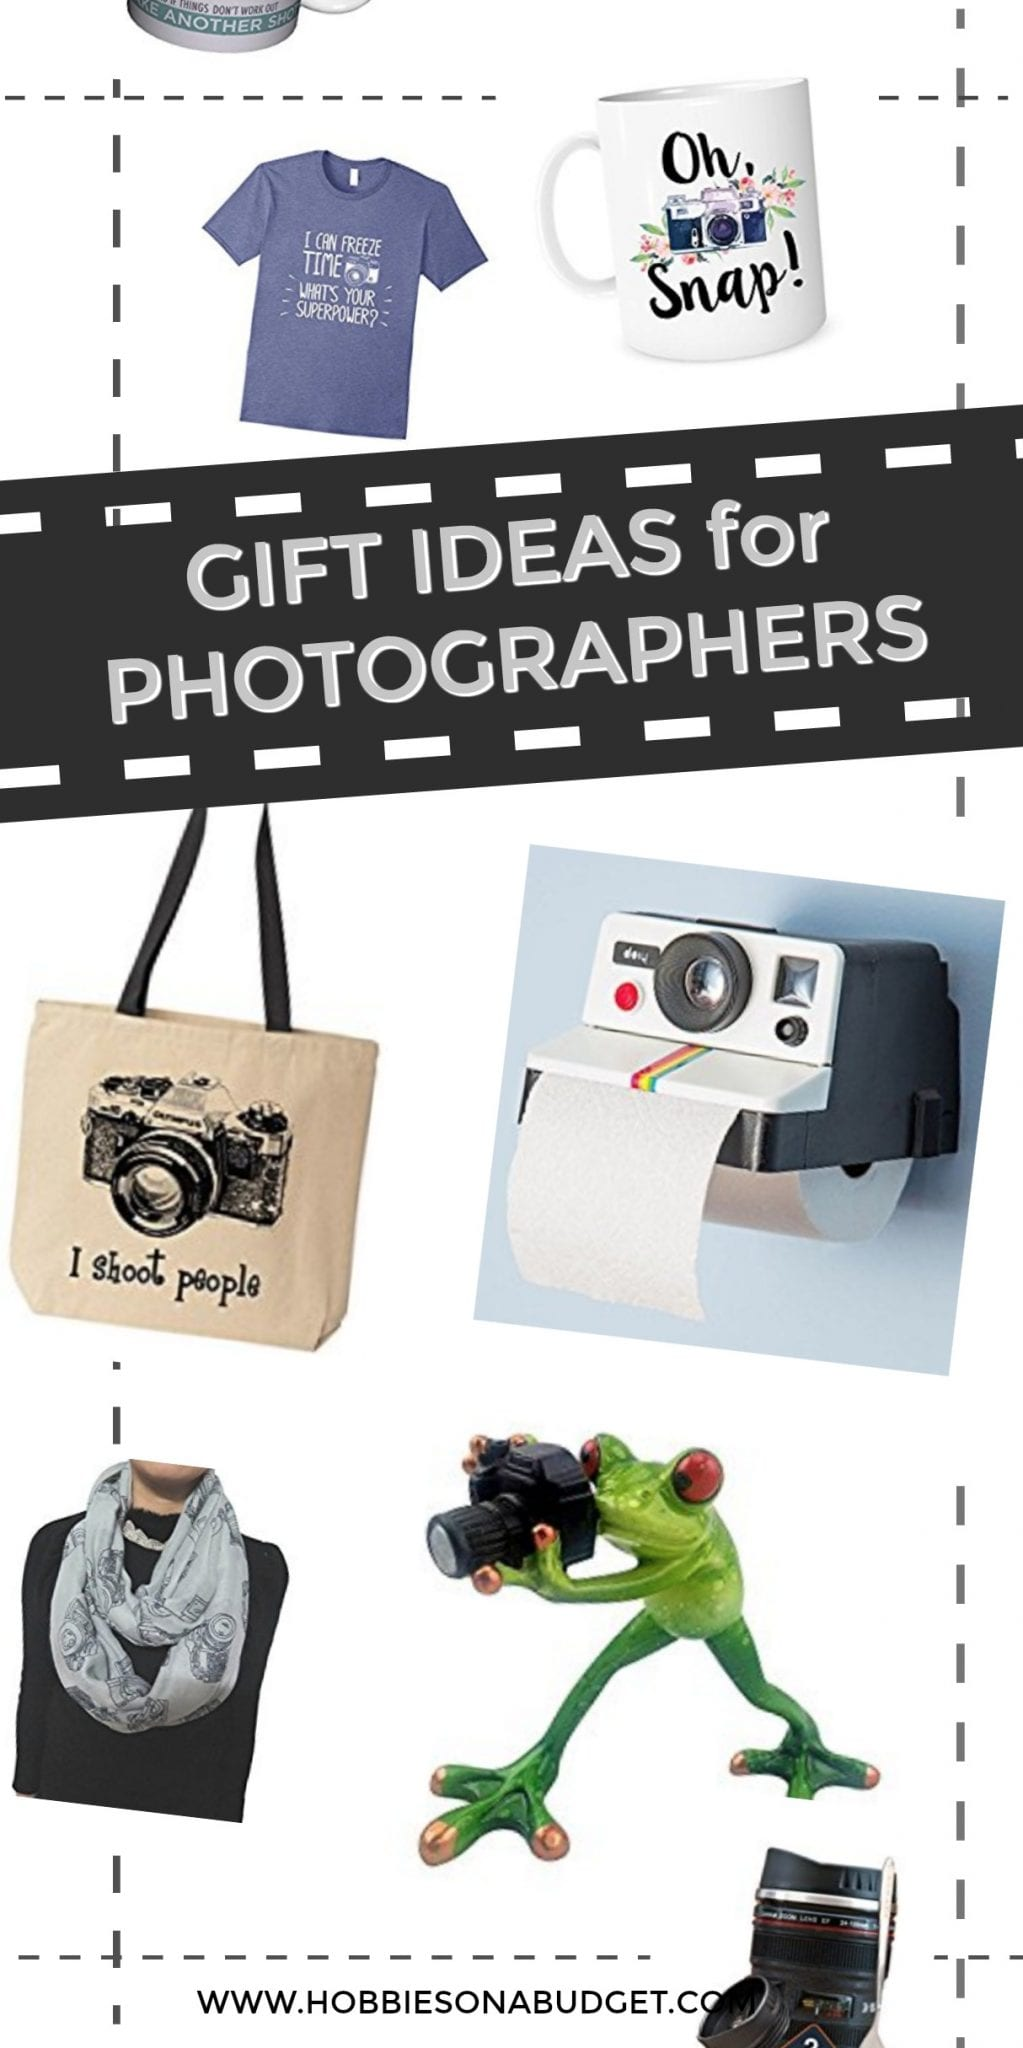 Gift Ideas for Photographers 1